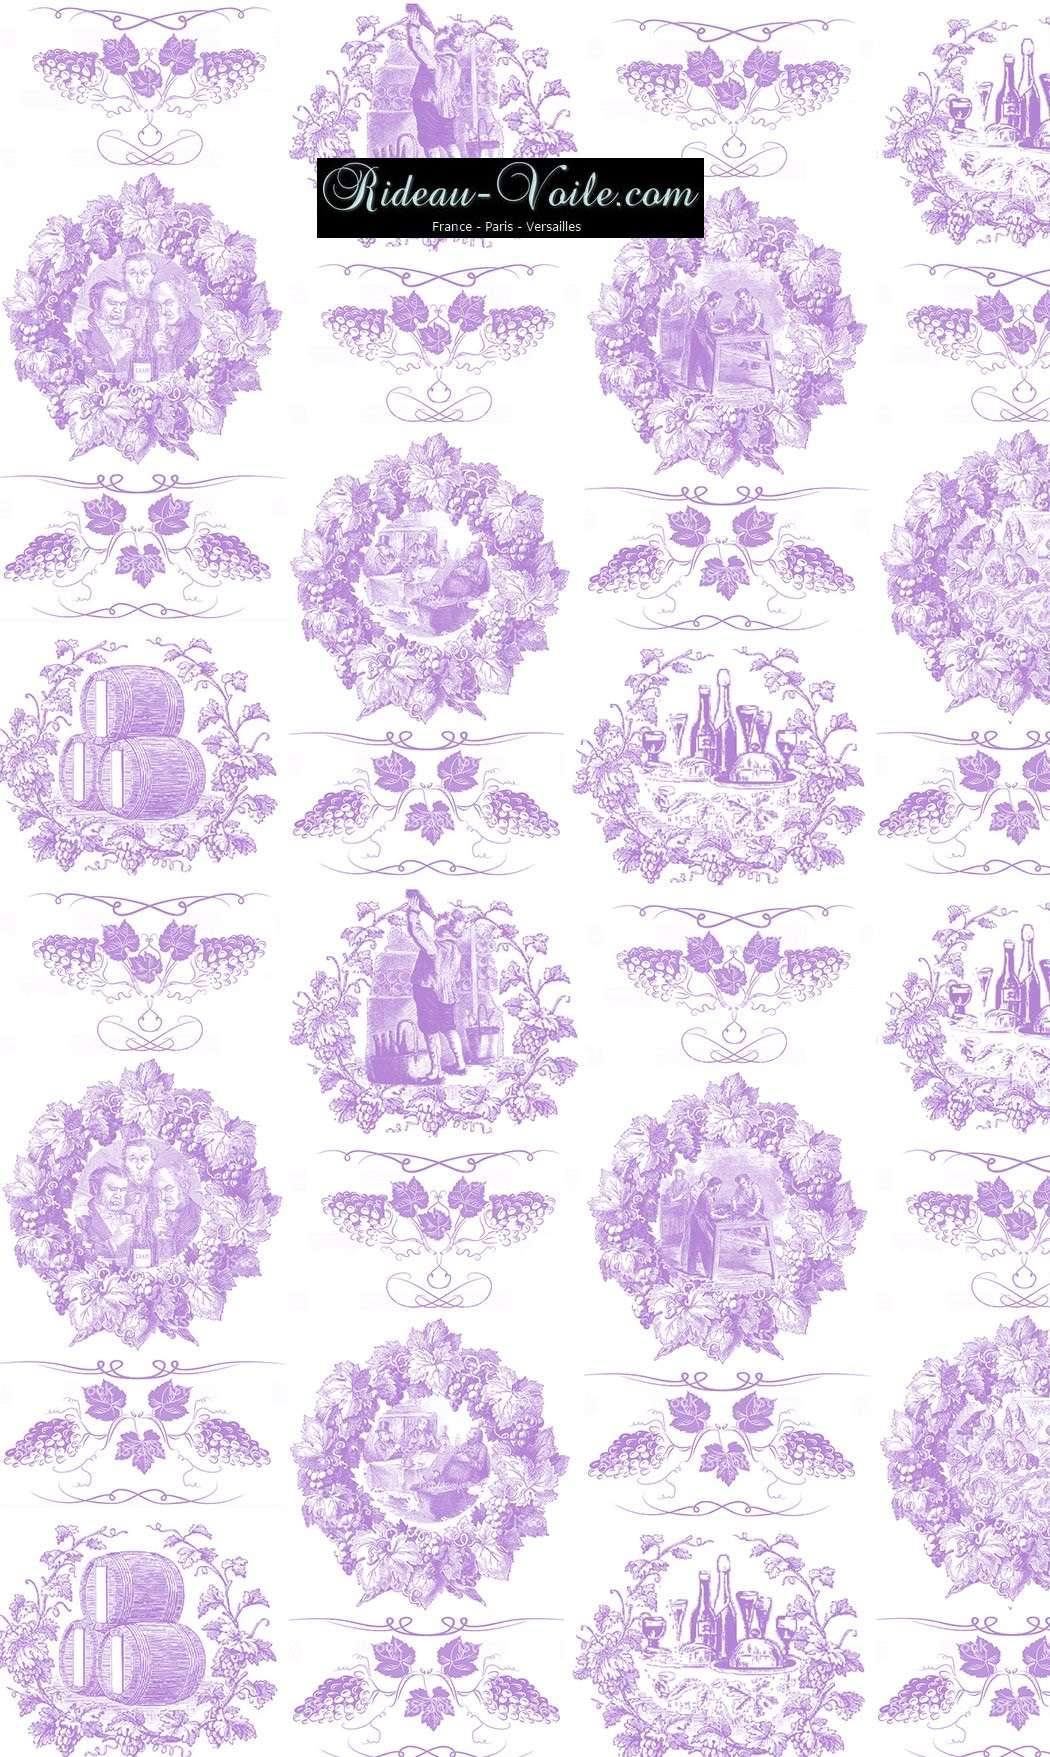 Toile de jouy tissu motif imprimé ameublement décoration tapisserie linge de maison housse coussin couette luxe lit fabric pattern printed home furnishing decoration tapestry linens cover cushion quilt luxury upholstery lilas lilac violet